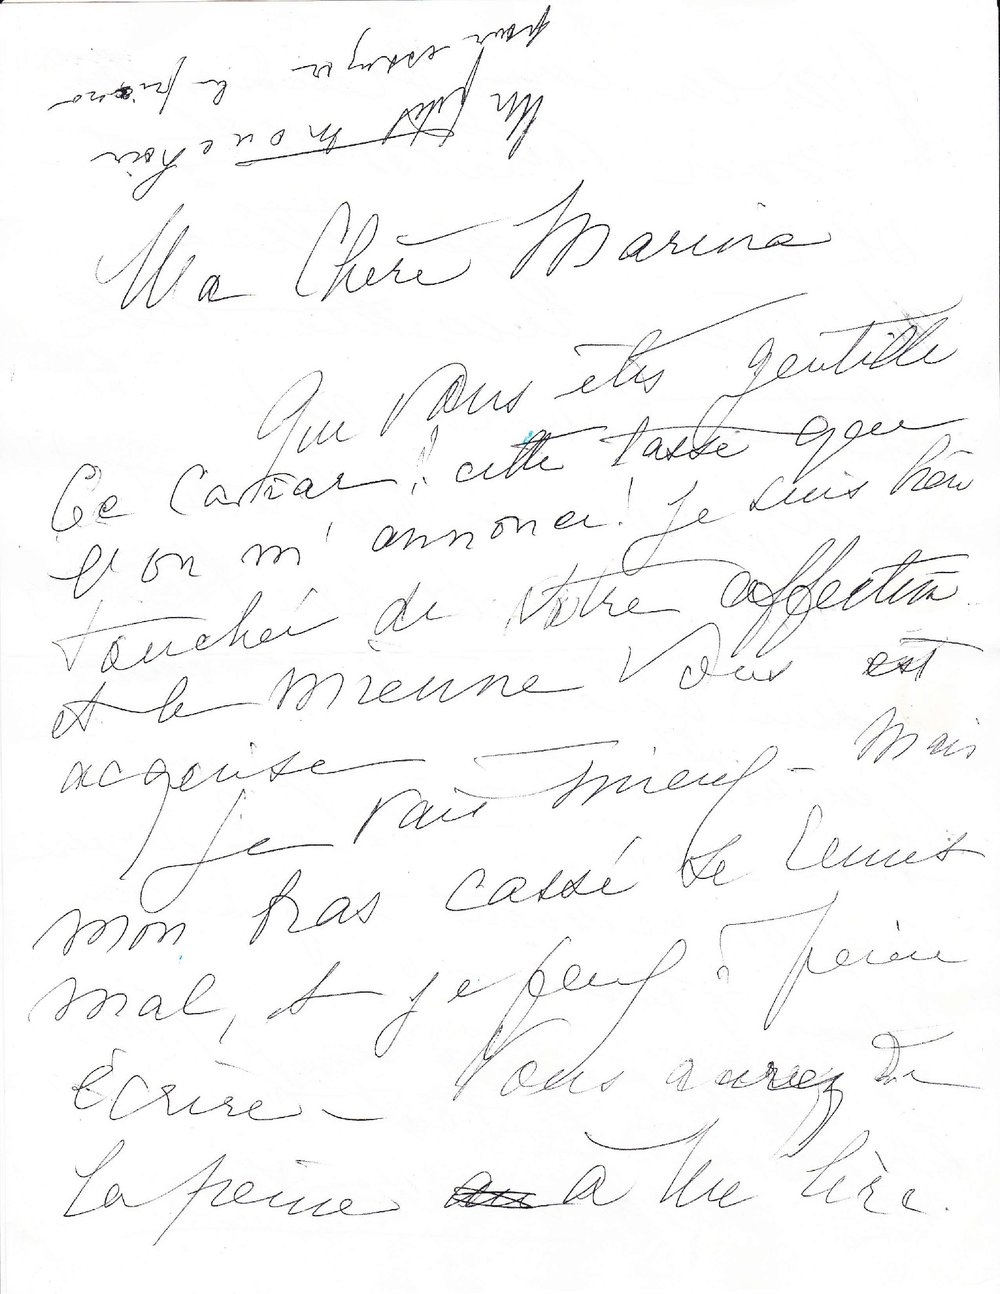 Letter from Marguerite Long to Mdivani (first page)